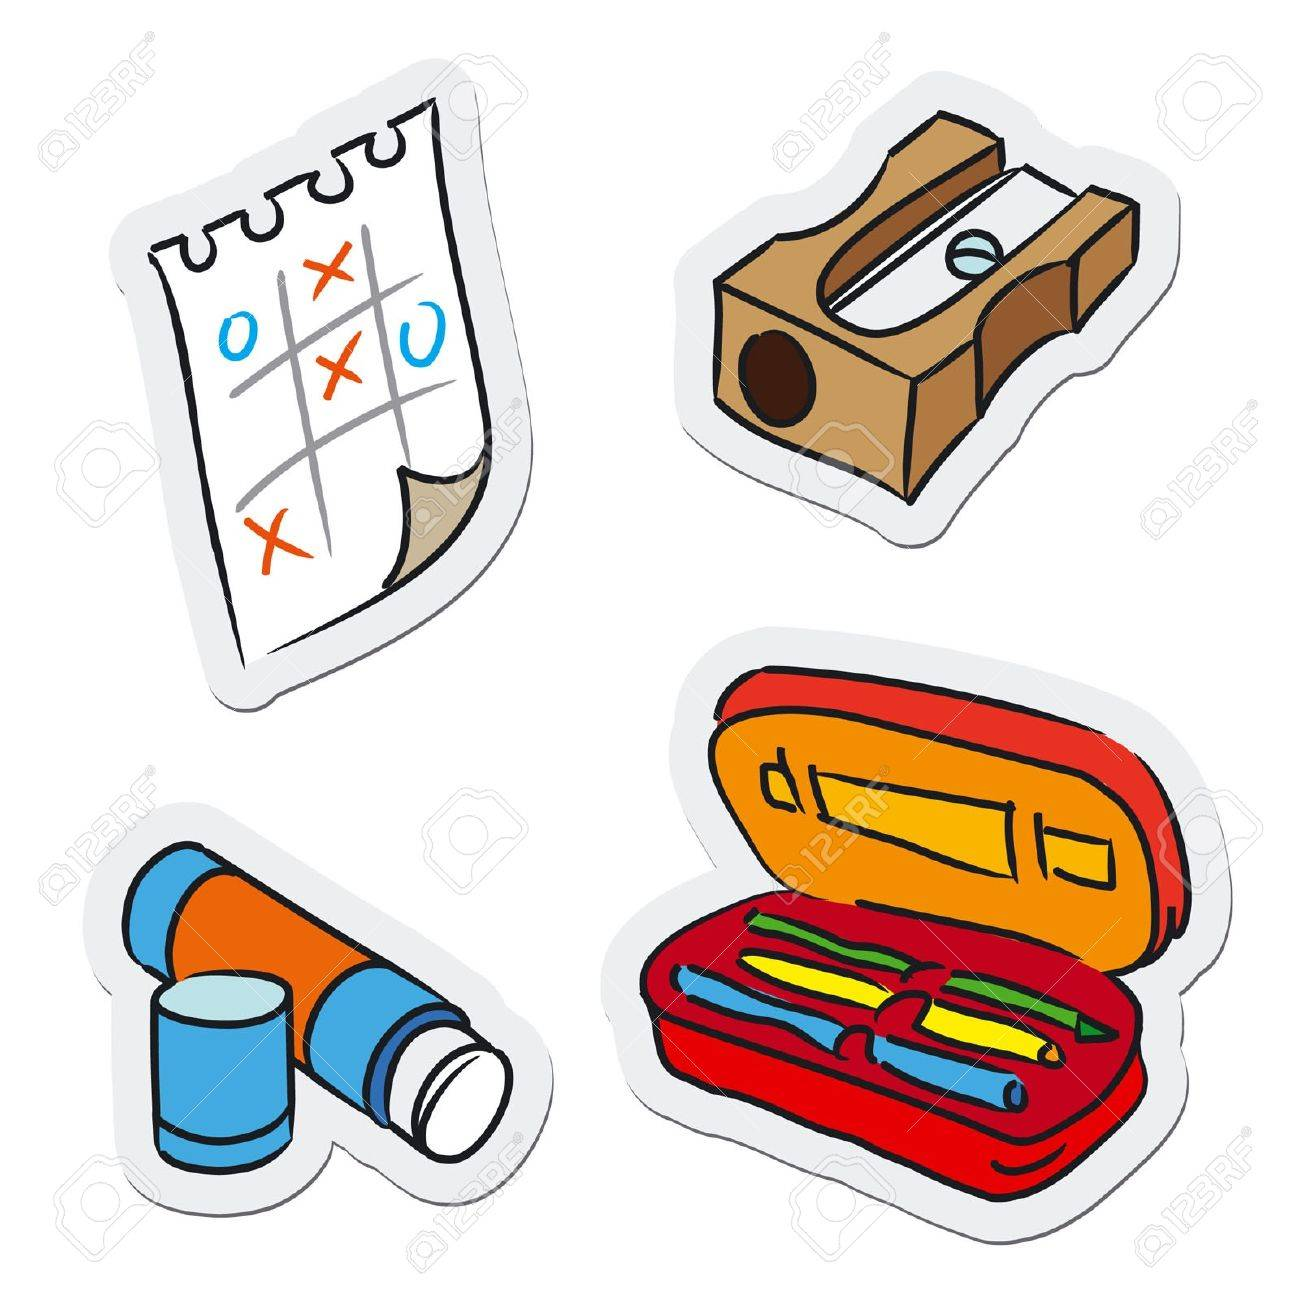 school text box clipart. school and education objects vector illustration stock 11872818 text box clipart o